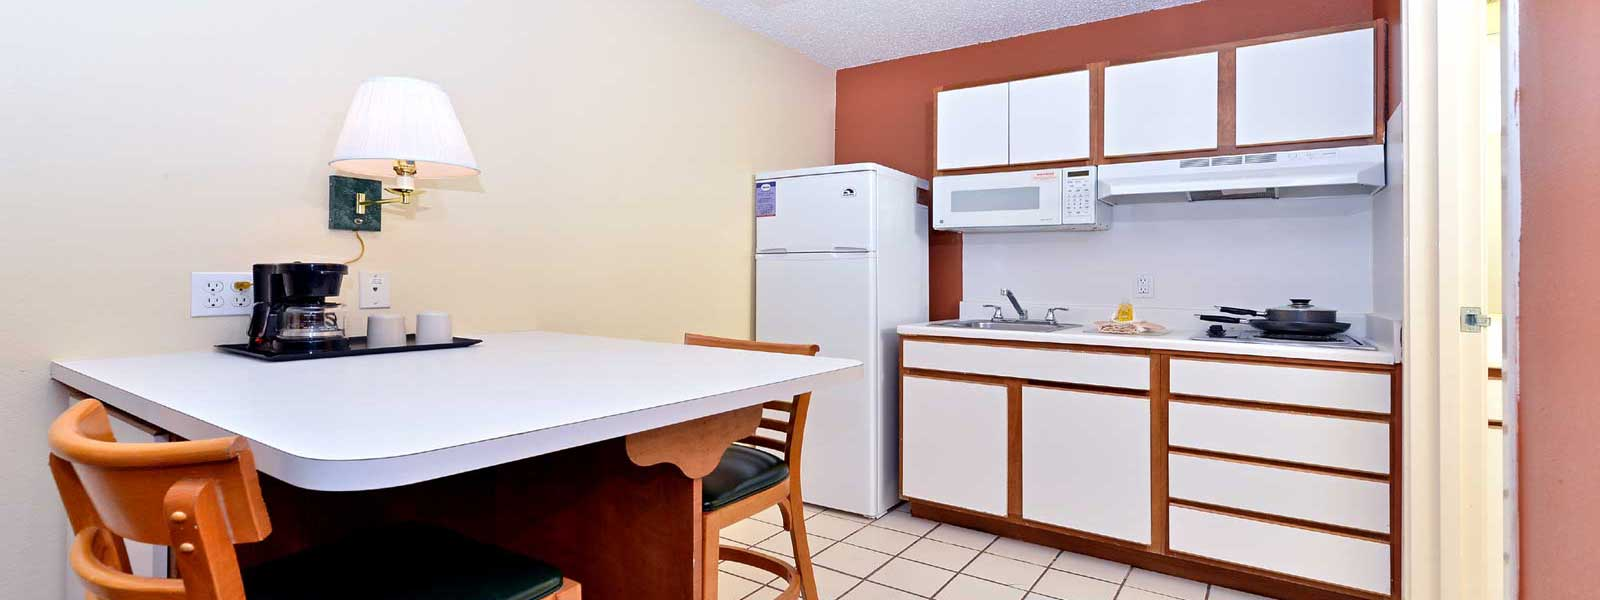 Kitchen Motels in Albuquerque Budget Discount 3 Star Rating